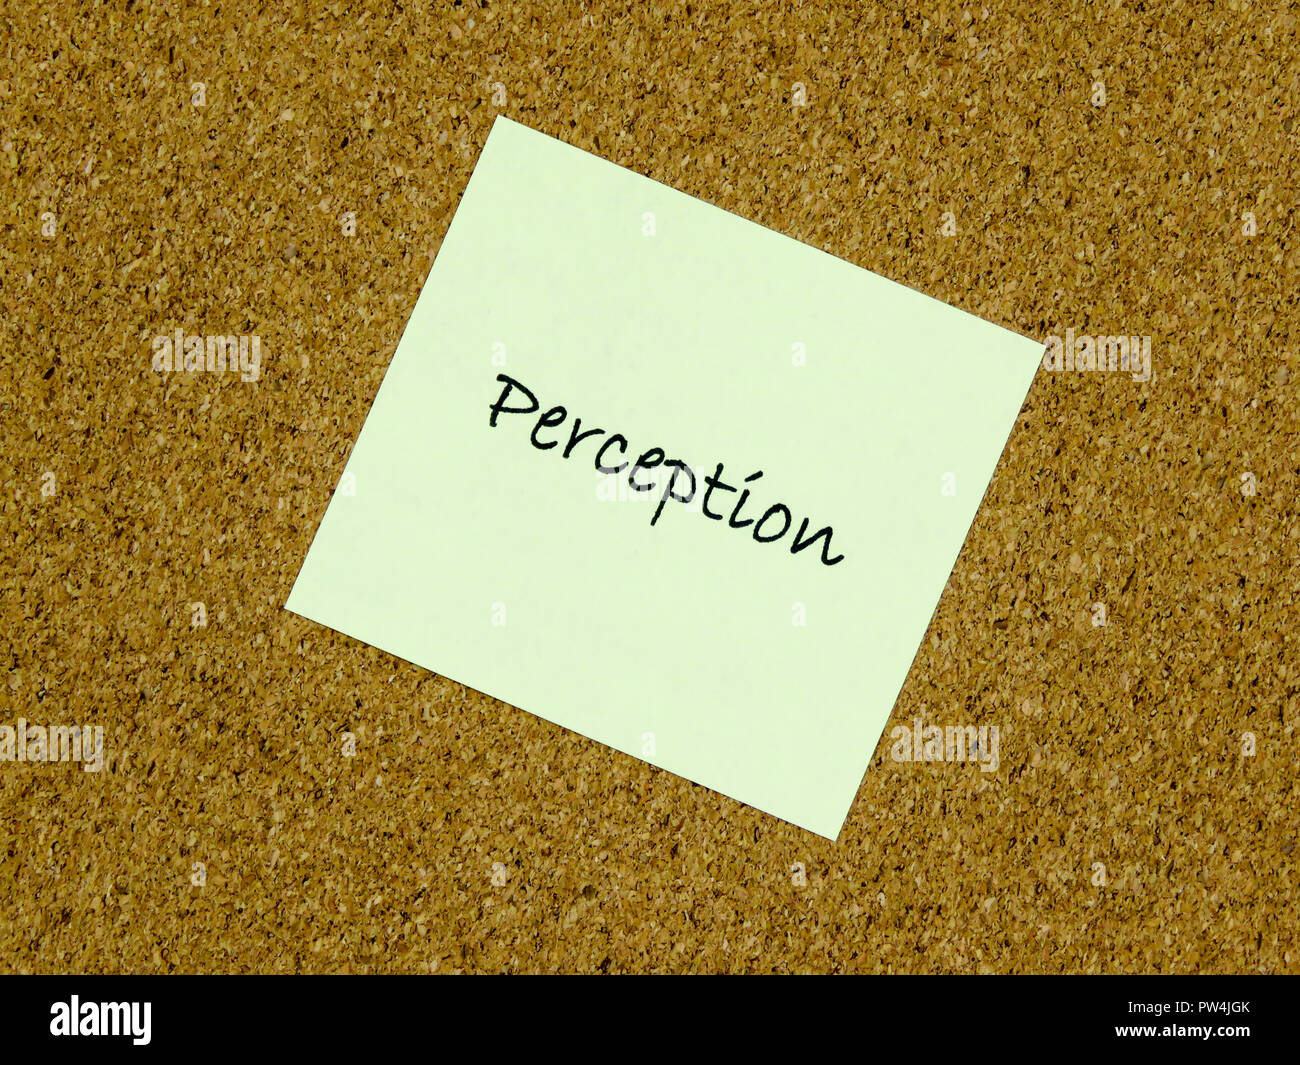 A yellow sticky note with perception written on it on a cork board background - Stock Image